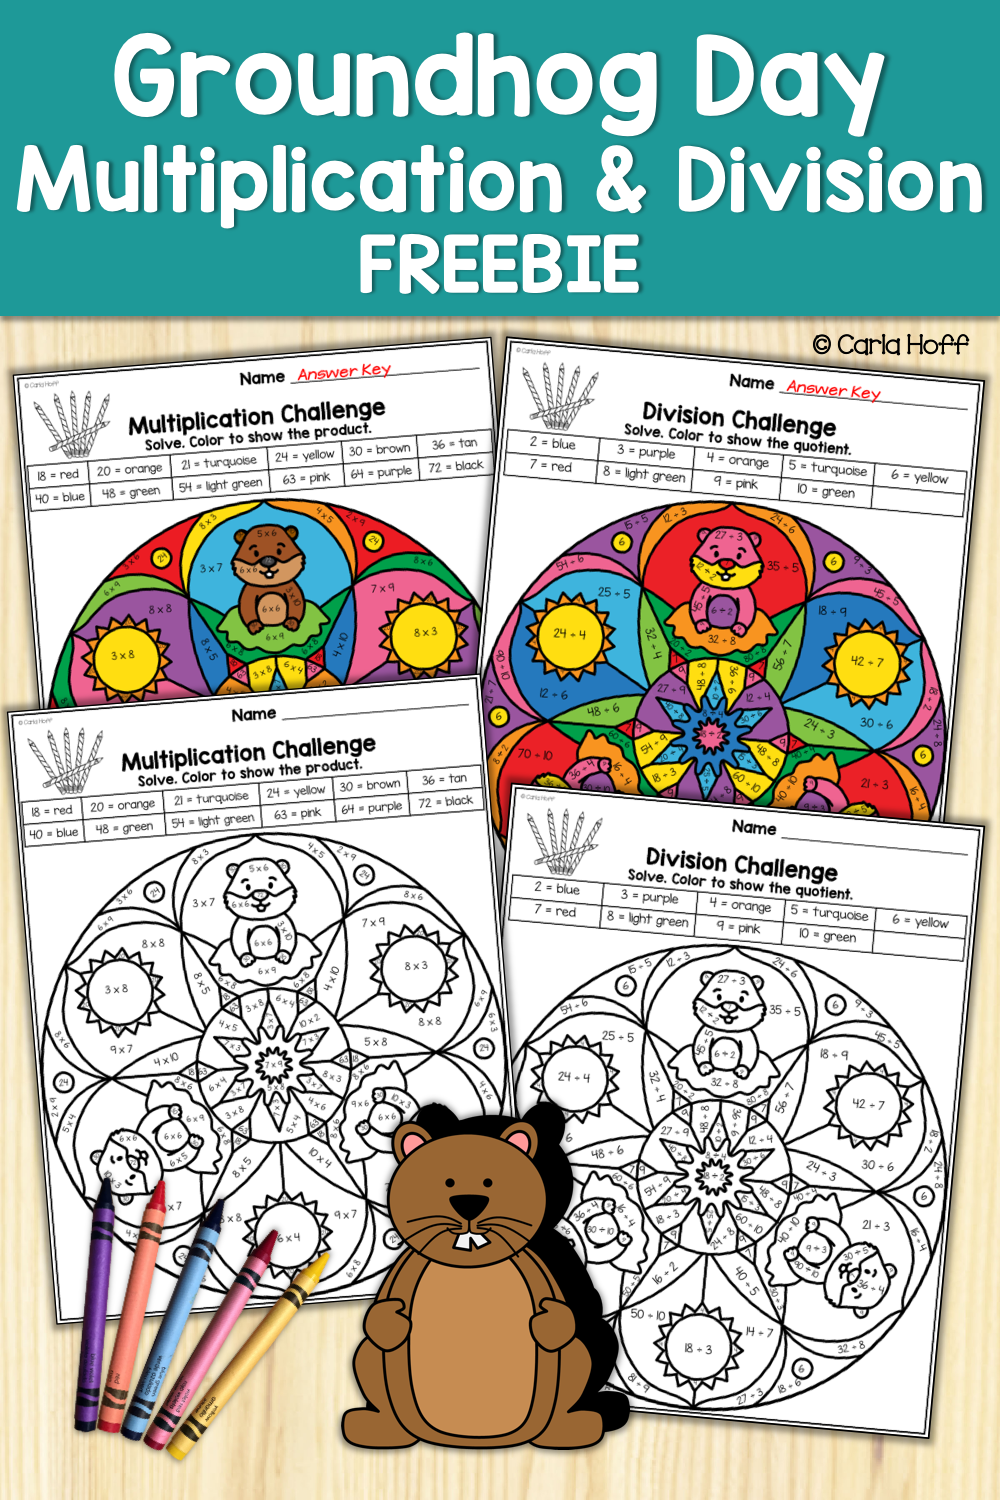 FREE! These color by code multiplication and division